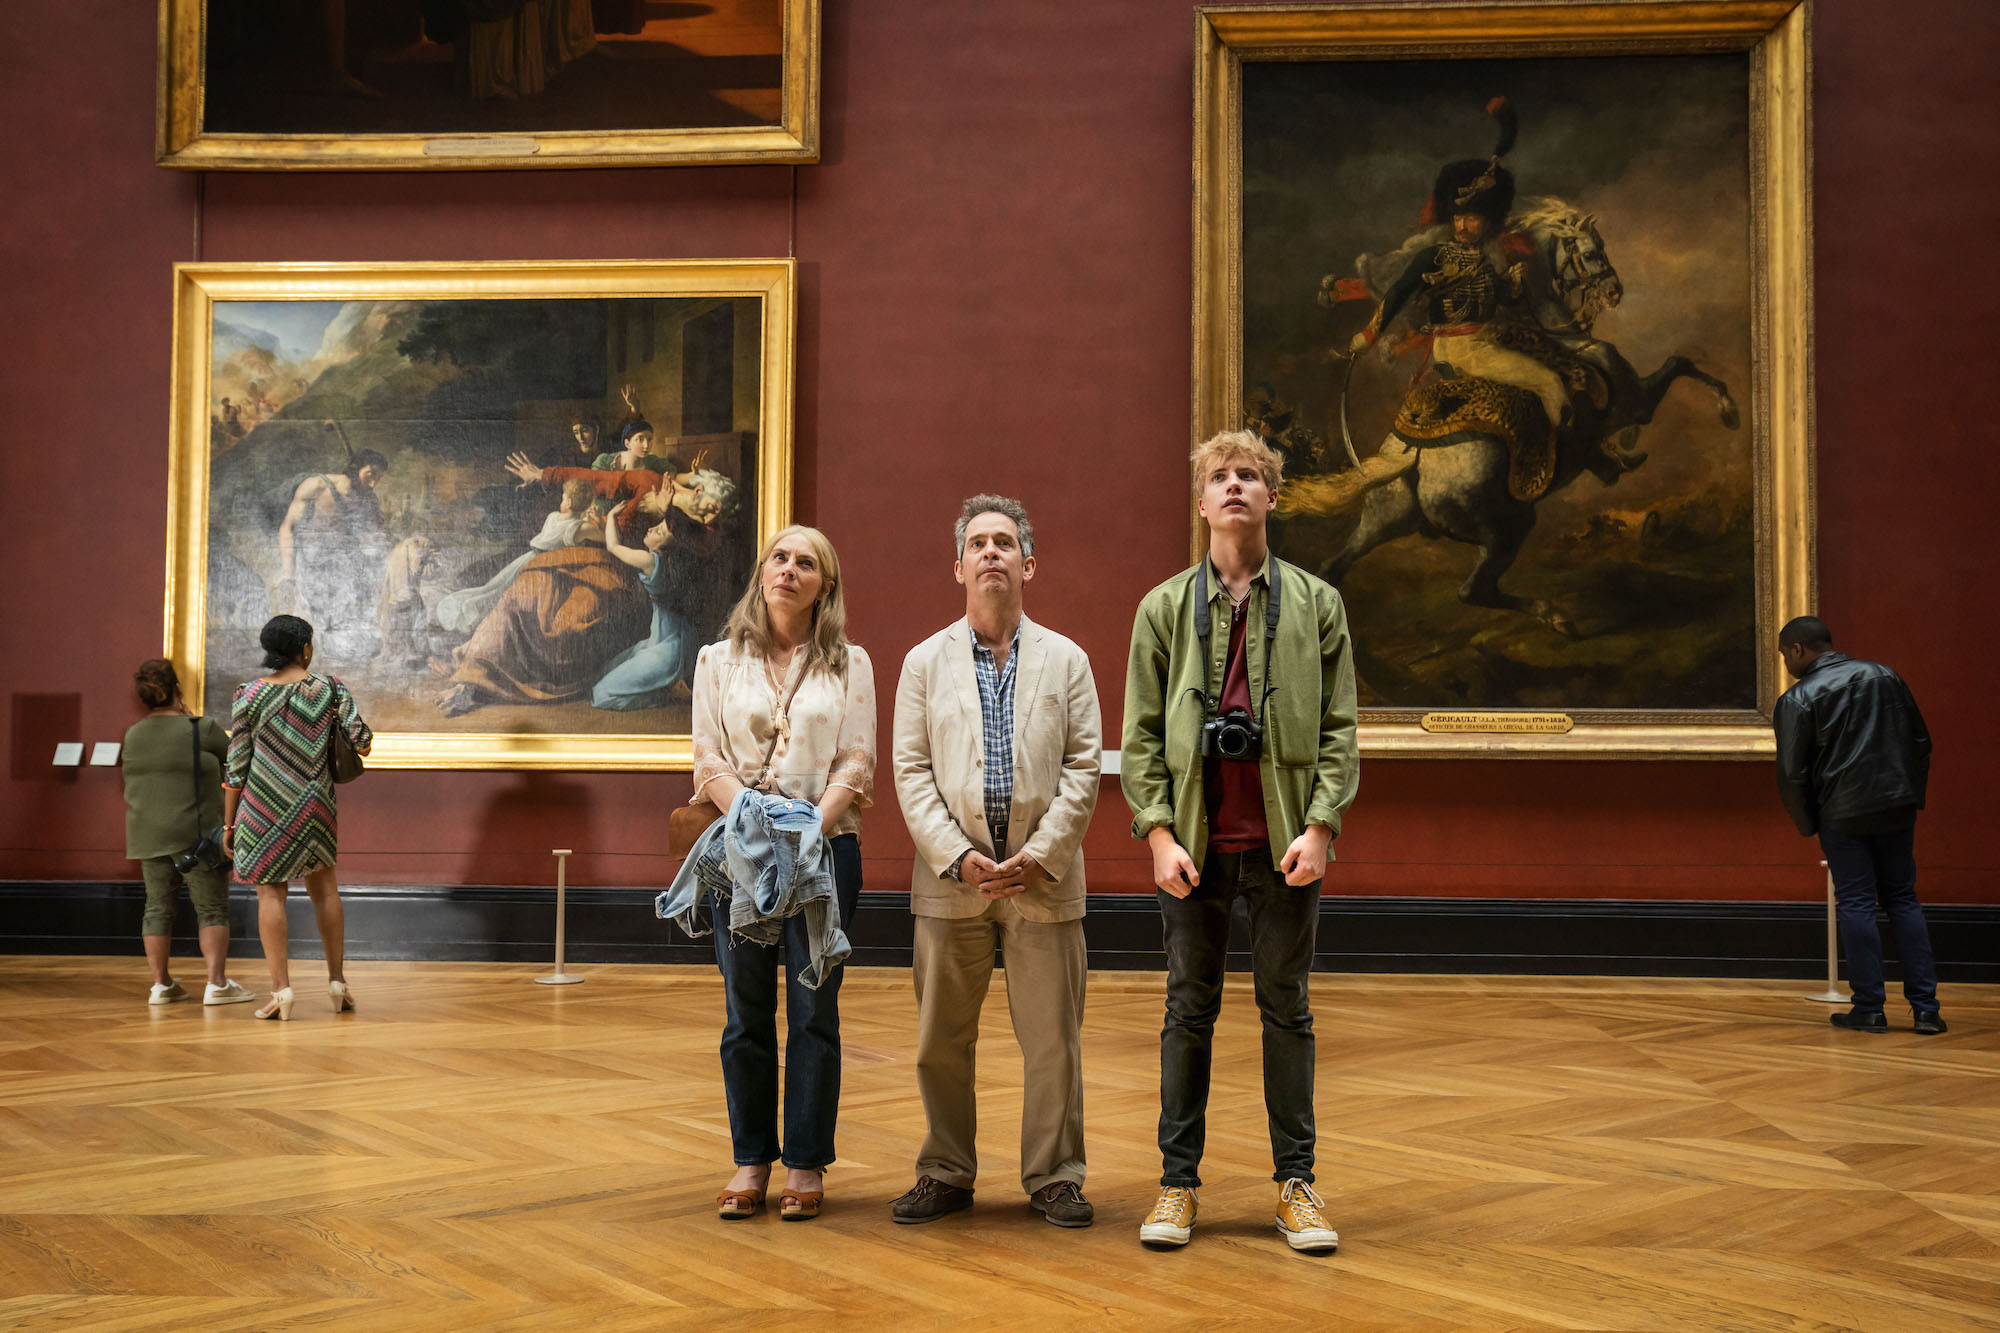 """MASTERPIECE""""Us""""Sundays, June 20 & 27, 2021 at 9/8cIn a drama tinged with humor and heartbreak, Tom Hollander (Baptiste, The Night Manager) and Saskia Reeves (Luther) play a couple who embark on a long-planned grand tour of Europe, despite the wife's wrenching proclamation that she wants to leave the marriage. The four-part series is based on a novel by best-selling author David Nicholls. The Daily Telegraph called it a """"brilliantly witty and heartfelt drama about a family on the edge.""""Shown from left to right: Saskia Reeves as Connie, Tom Hollander as Douglas and Tom Taylor as AlbieFor editorial use only.Courtesy of Drama Republic and MASTERPIECE."""